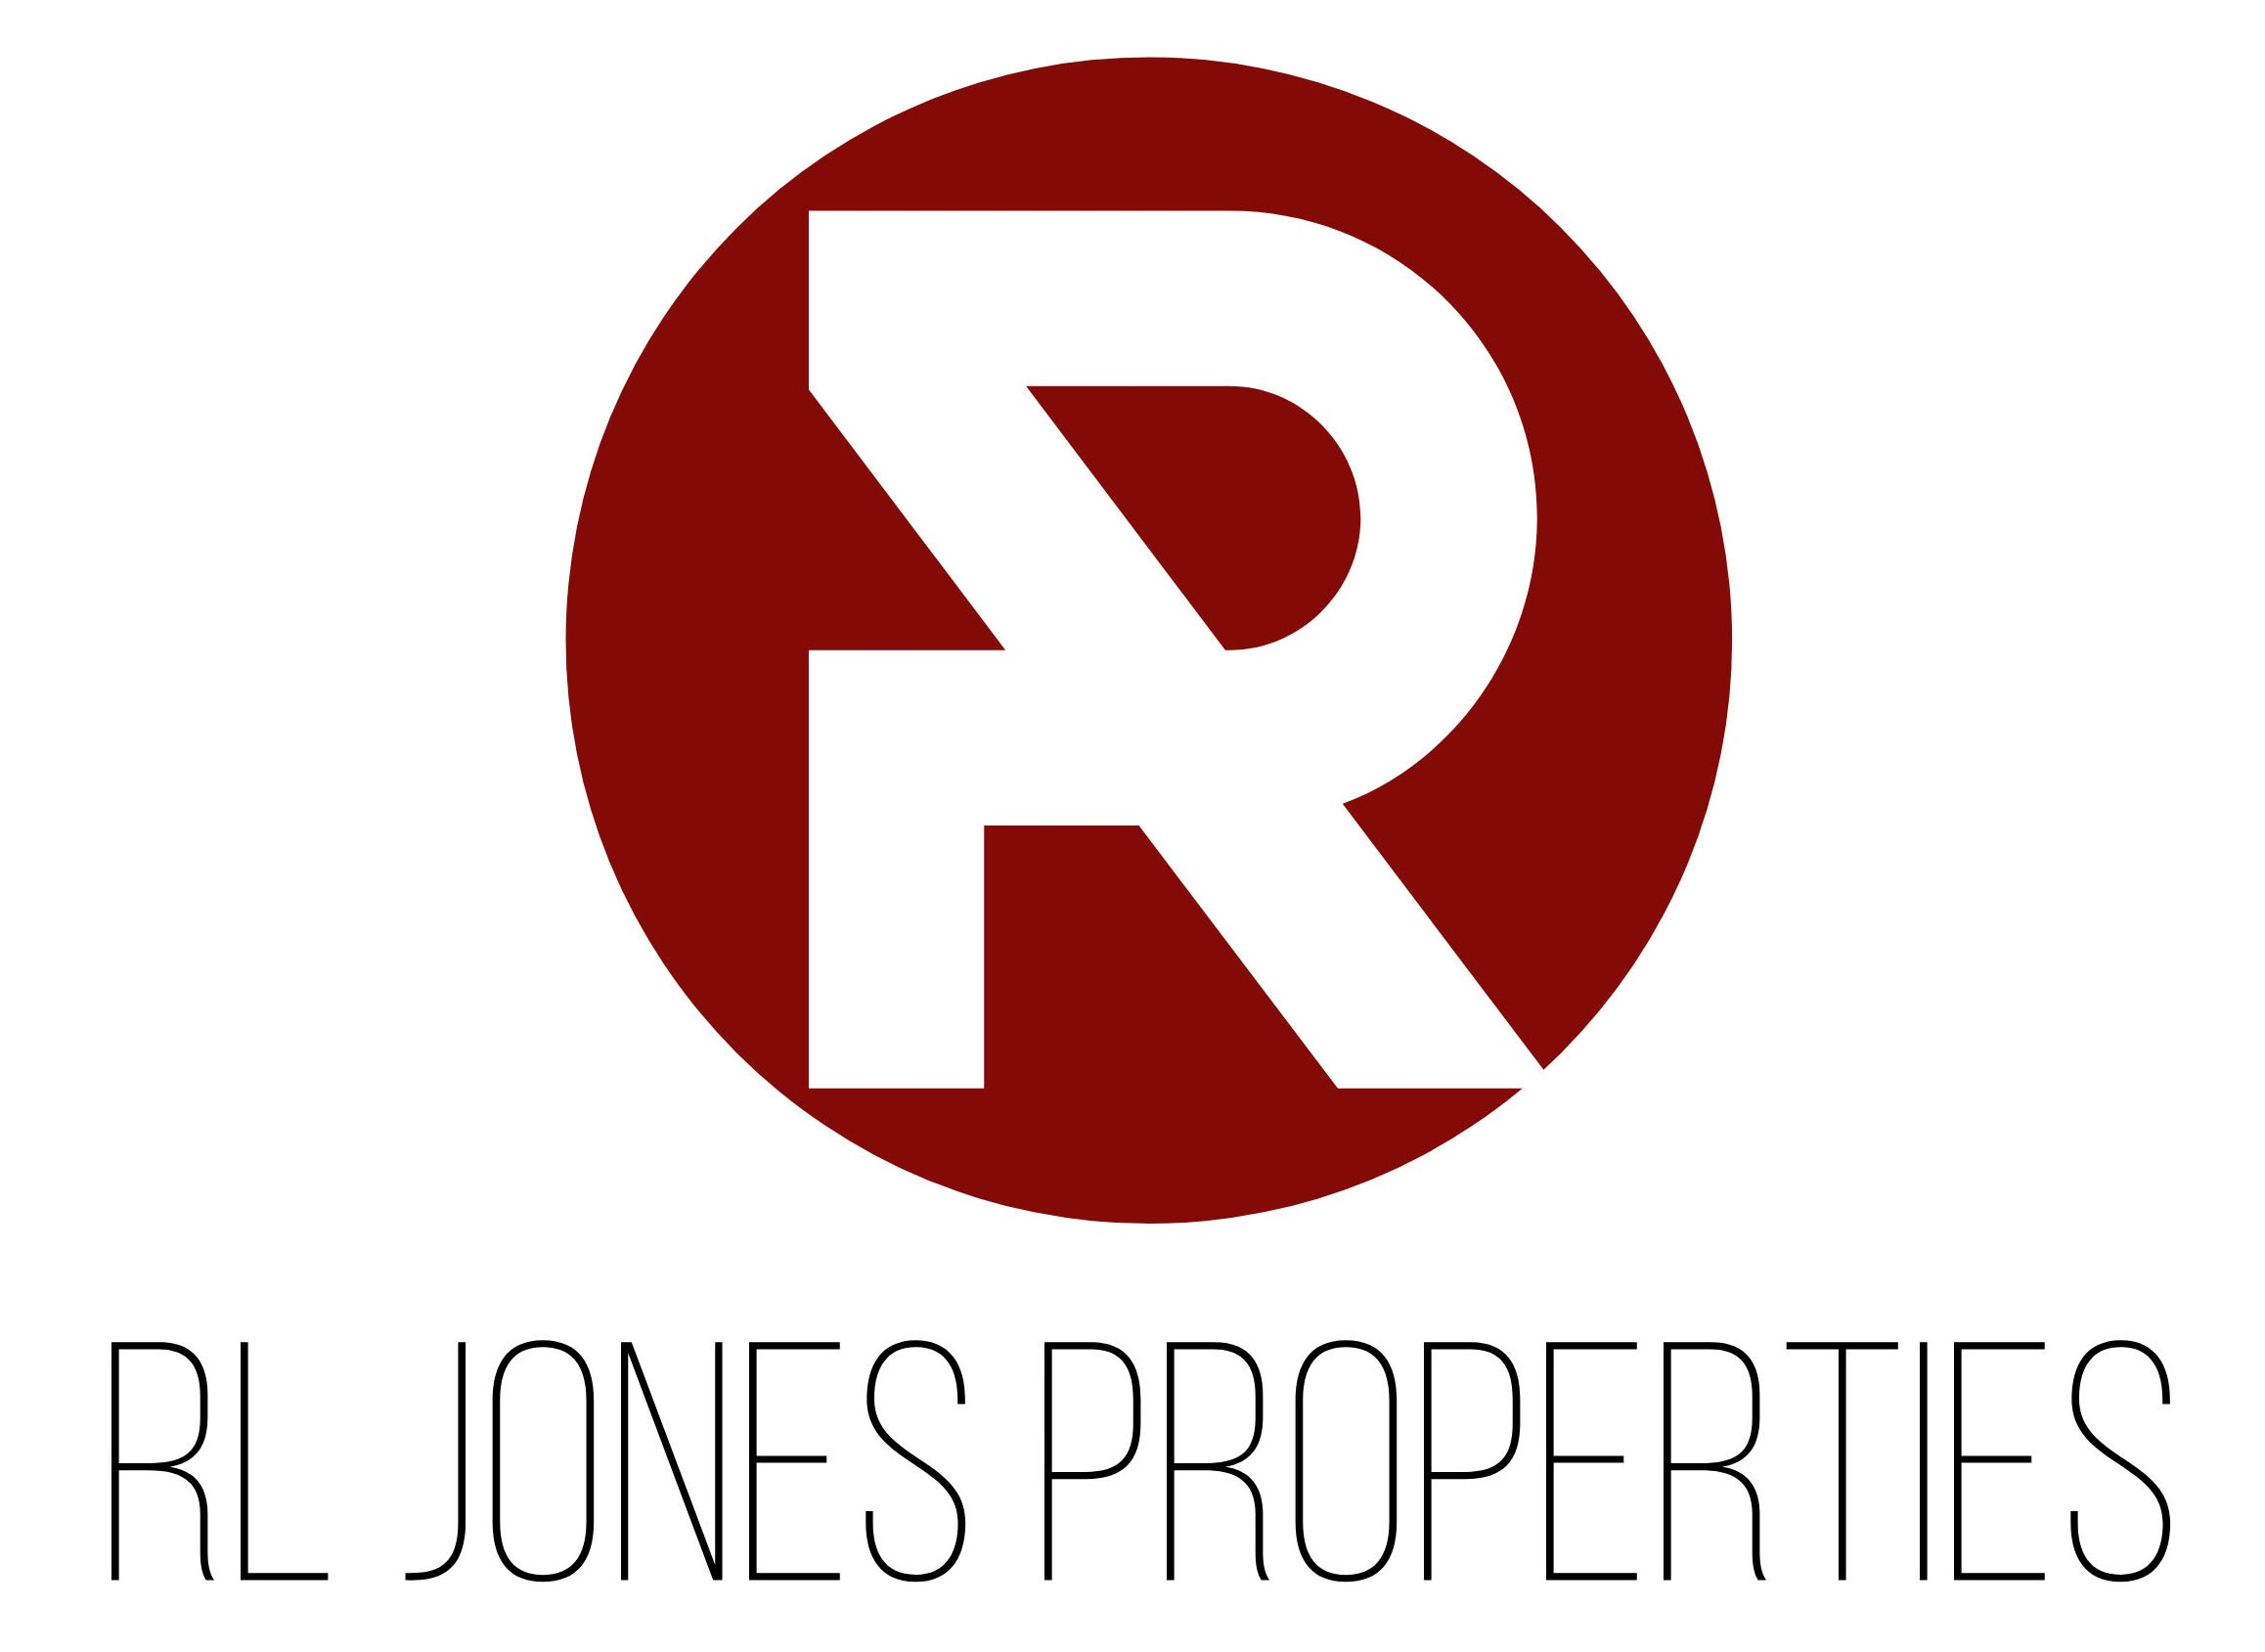 RL Jones Properties.jpg